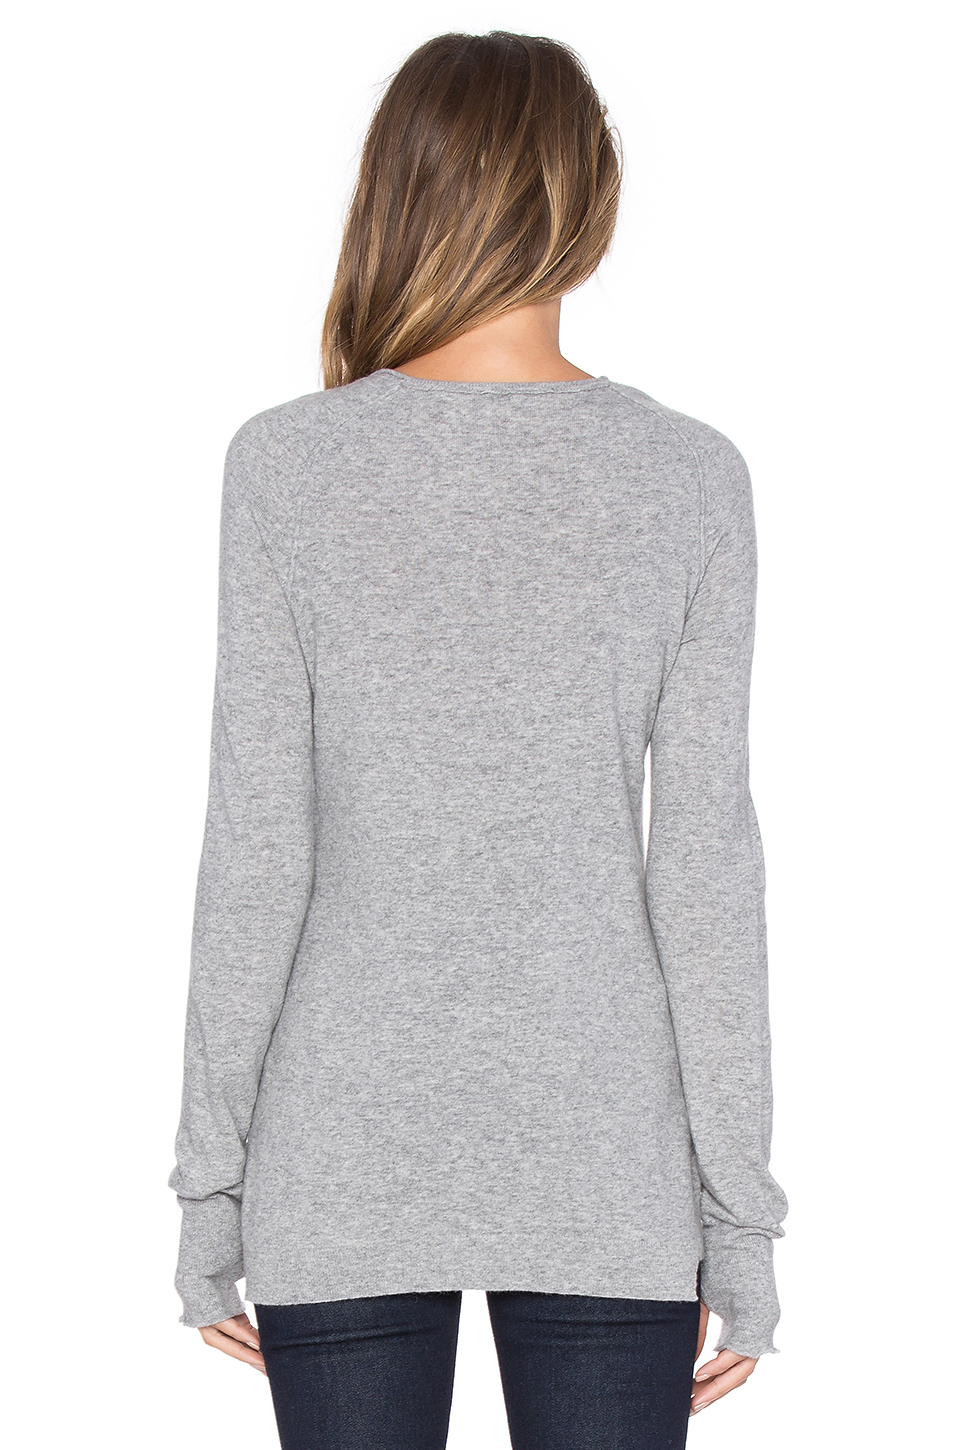 thumbhole dress lyst inhabit thumbhole stretch sweater in gray 1141